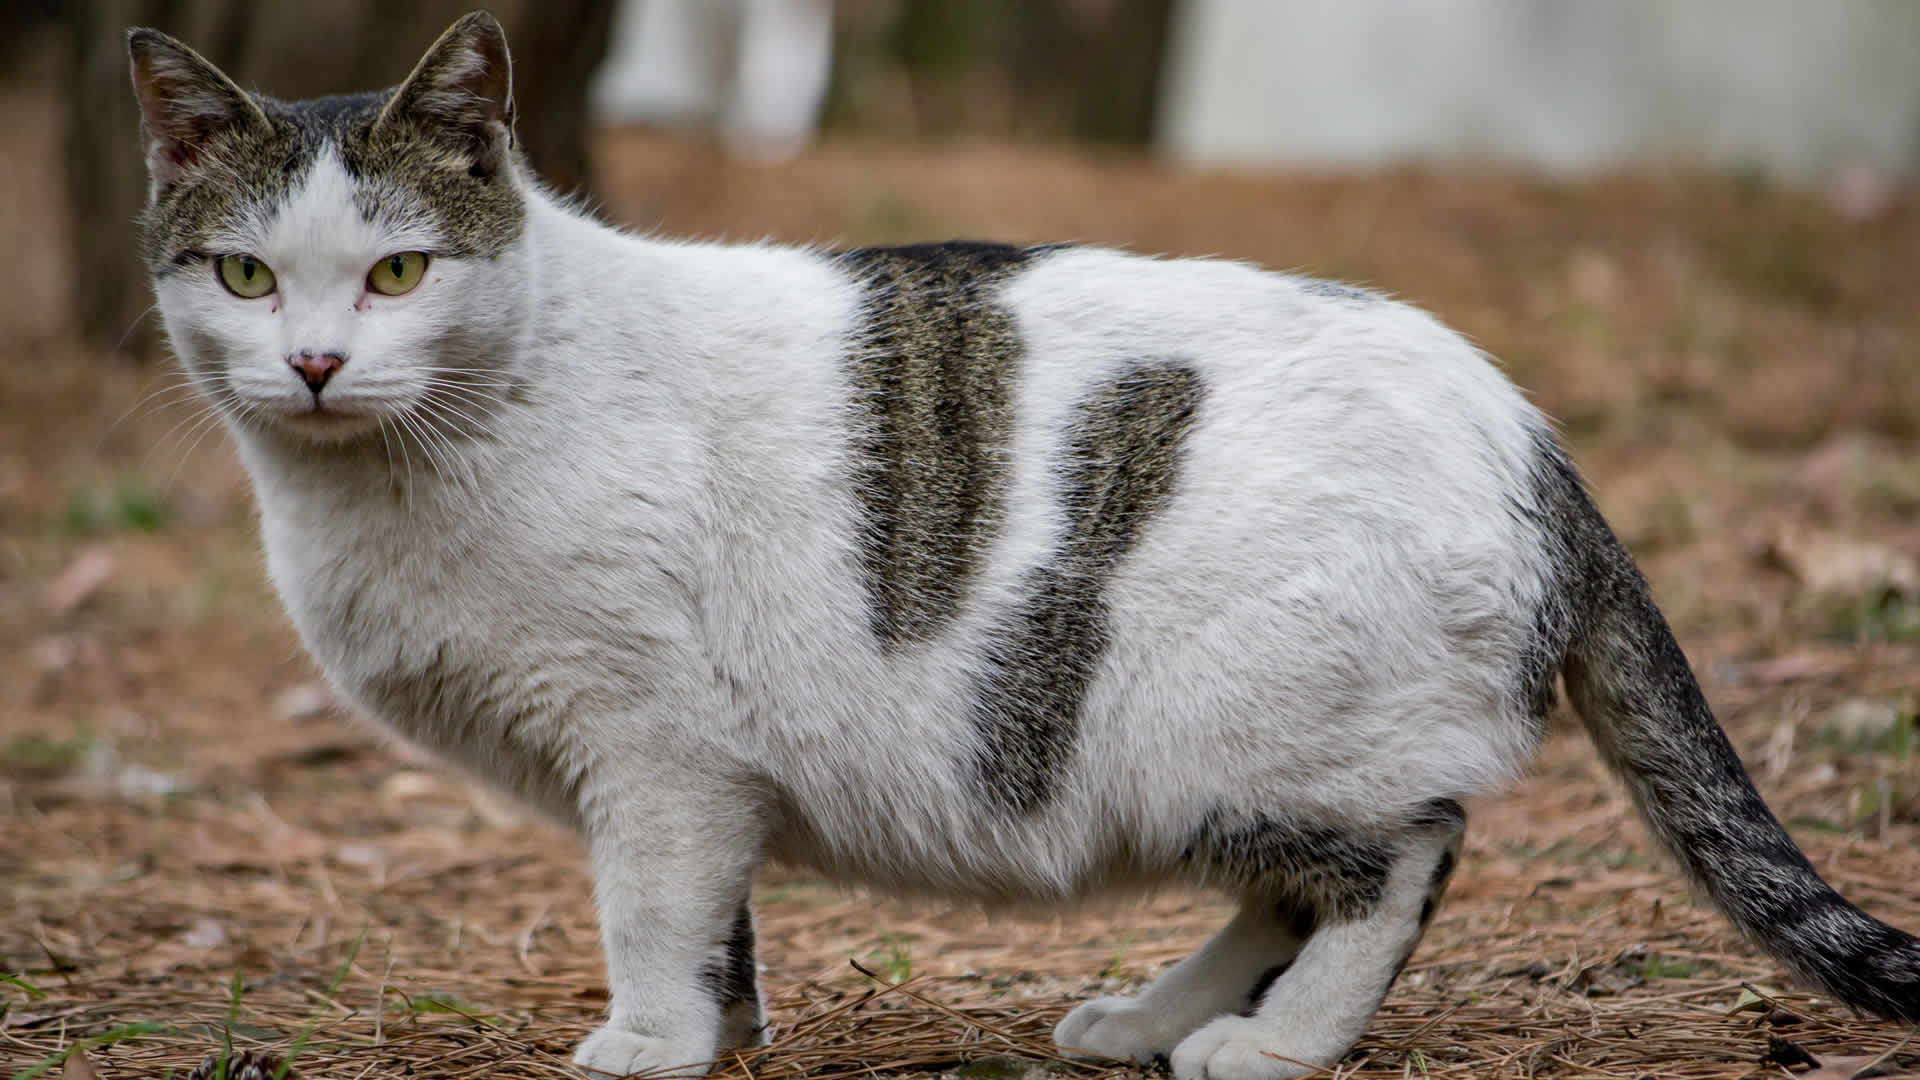 Can cats mate when pregnant